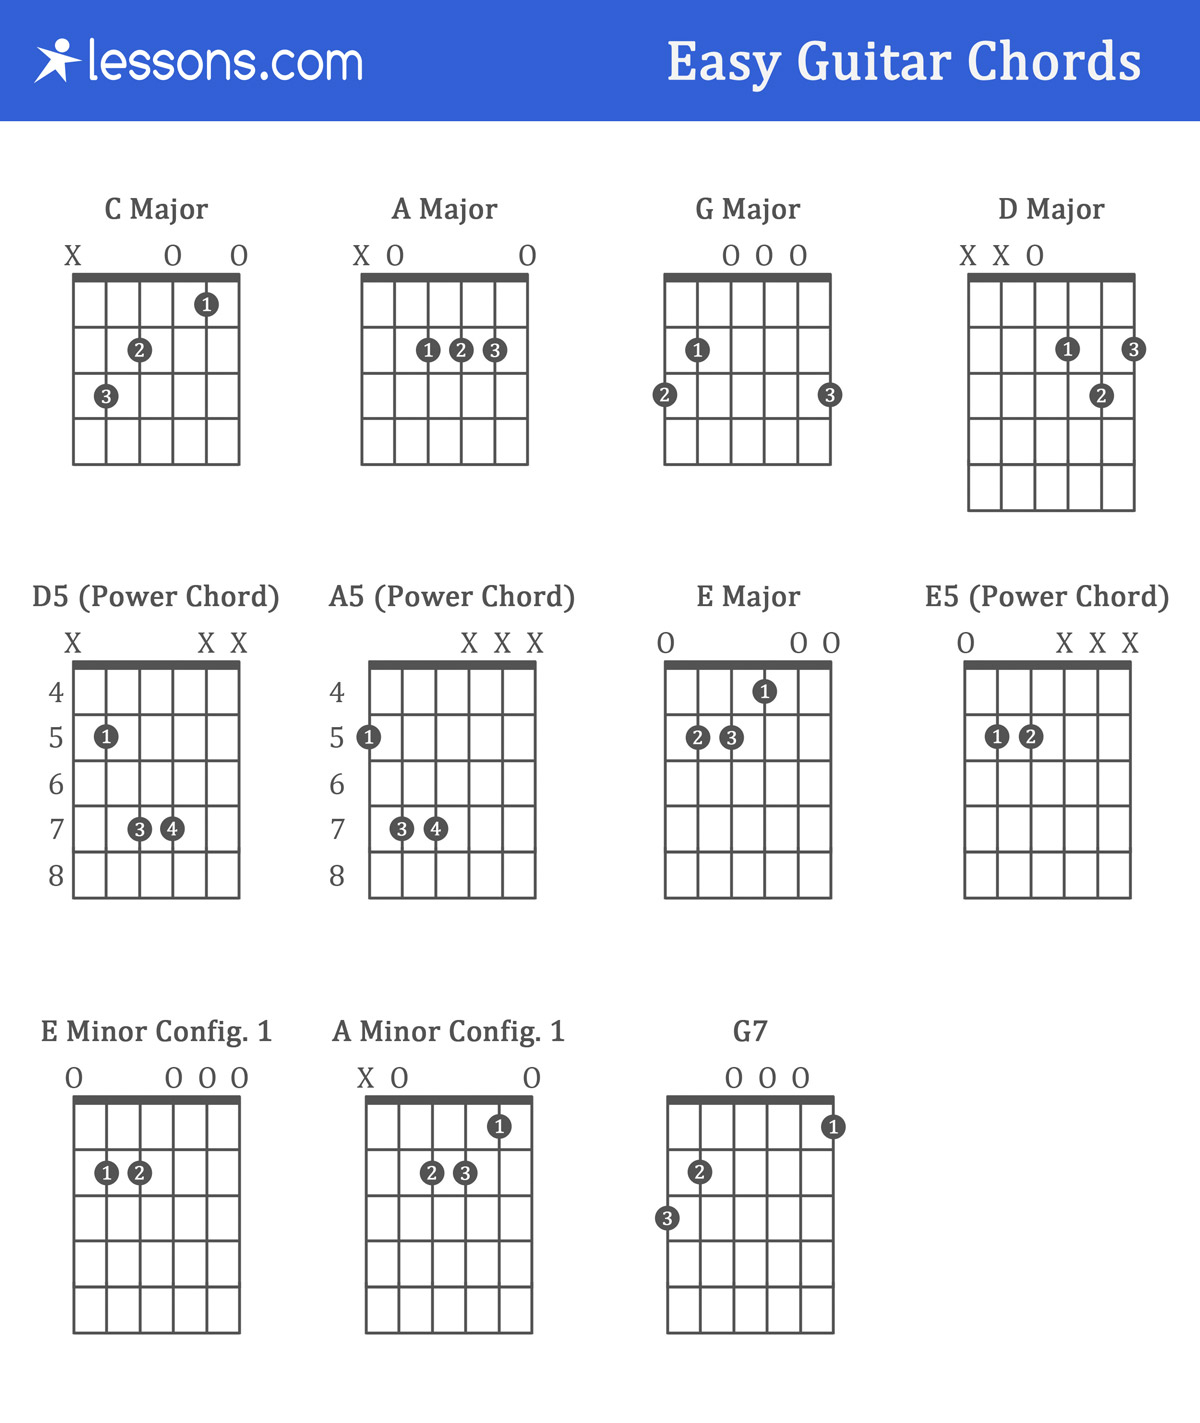 Chords For Guitar The 11 Easy Guitar Chords For Beginners With Charts Examples